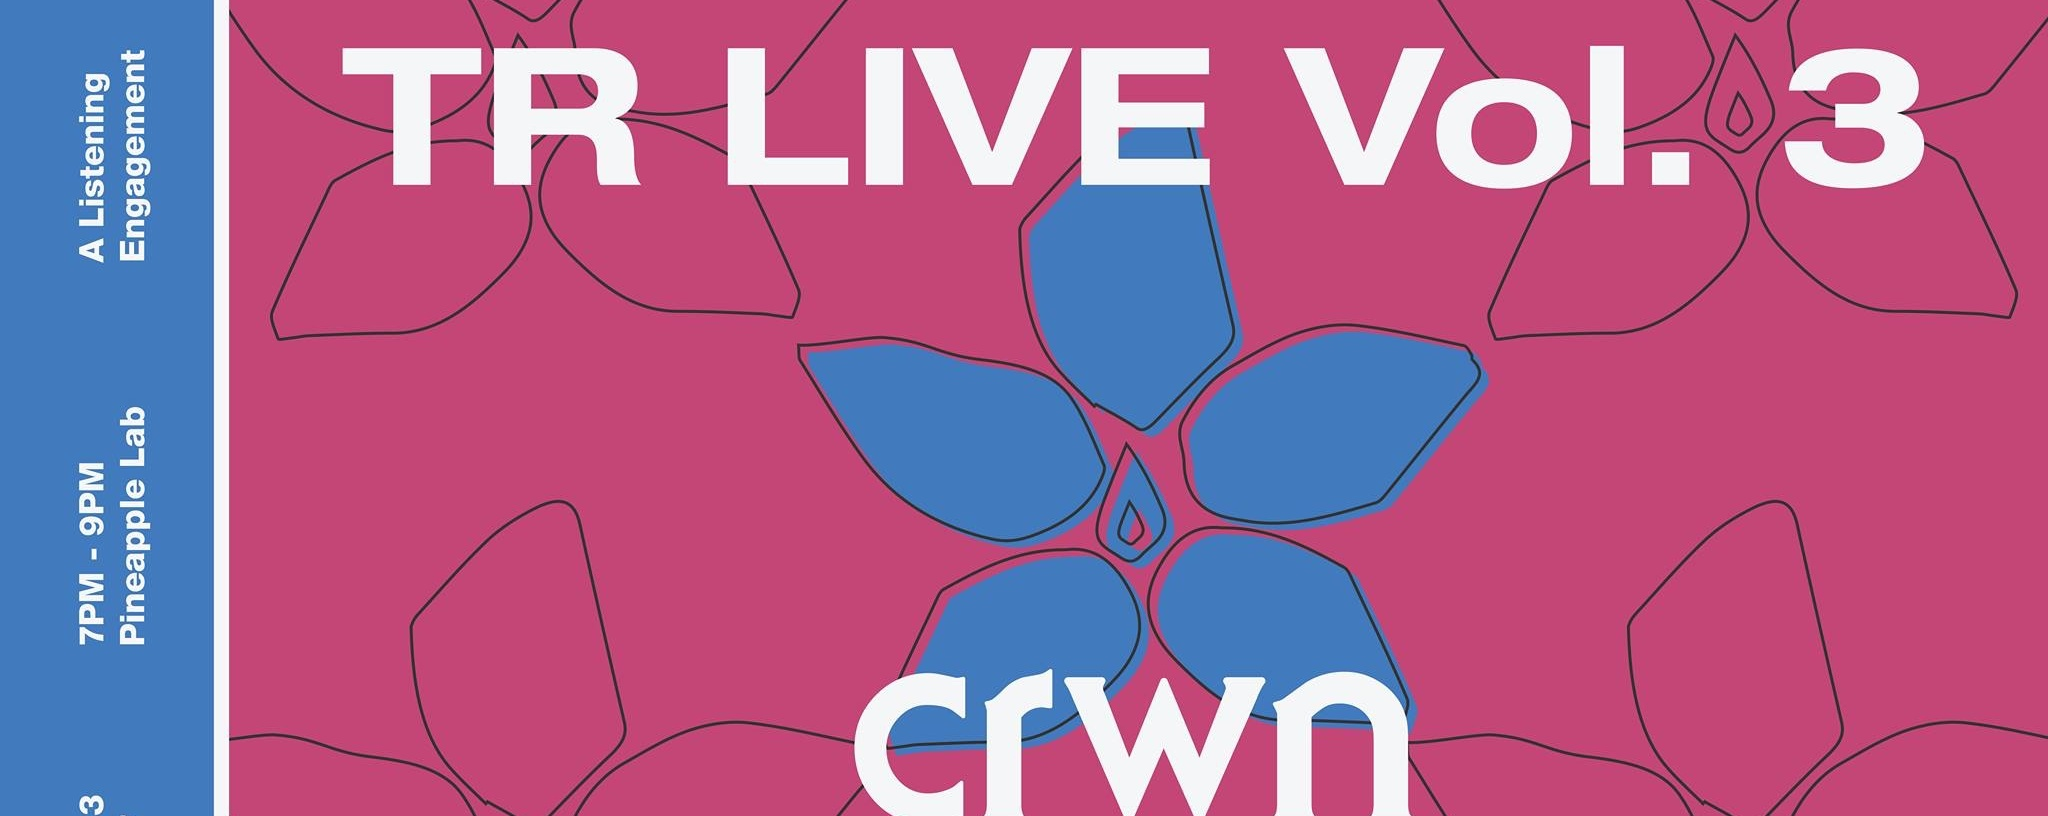 TR LIVE Vol. 3 curated by crwn